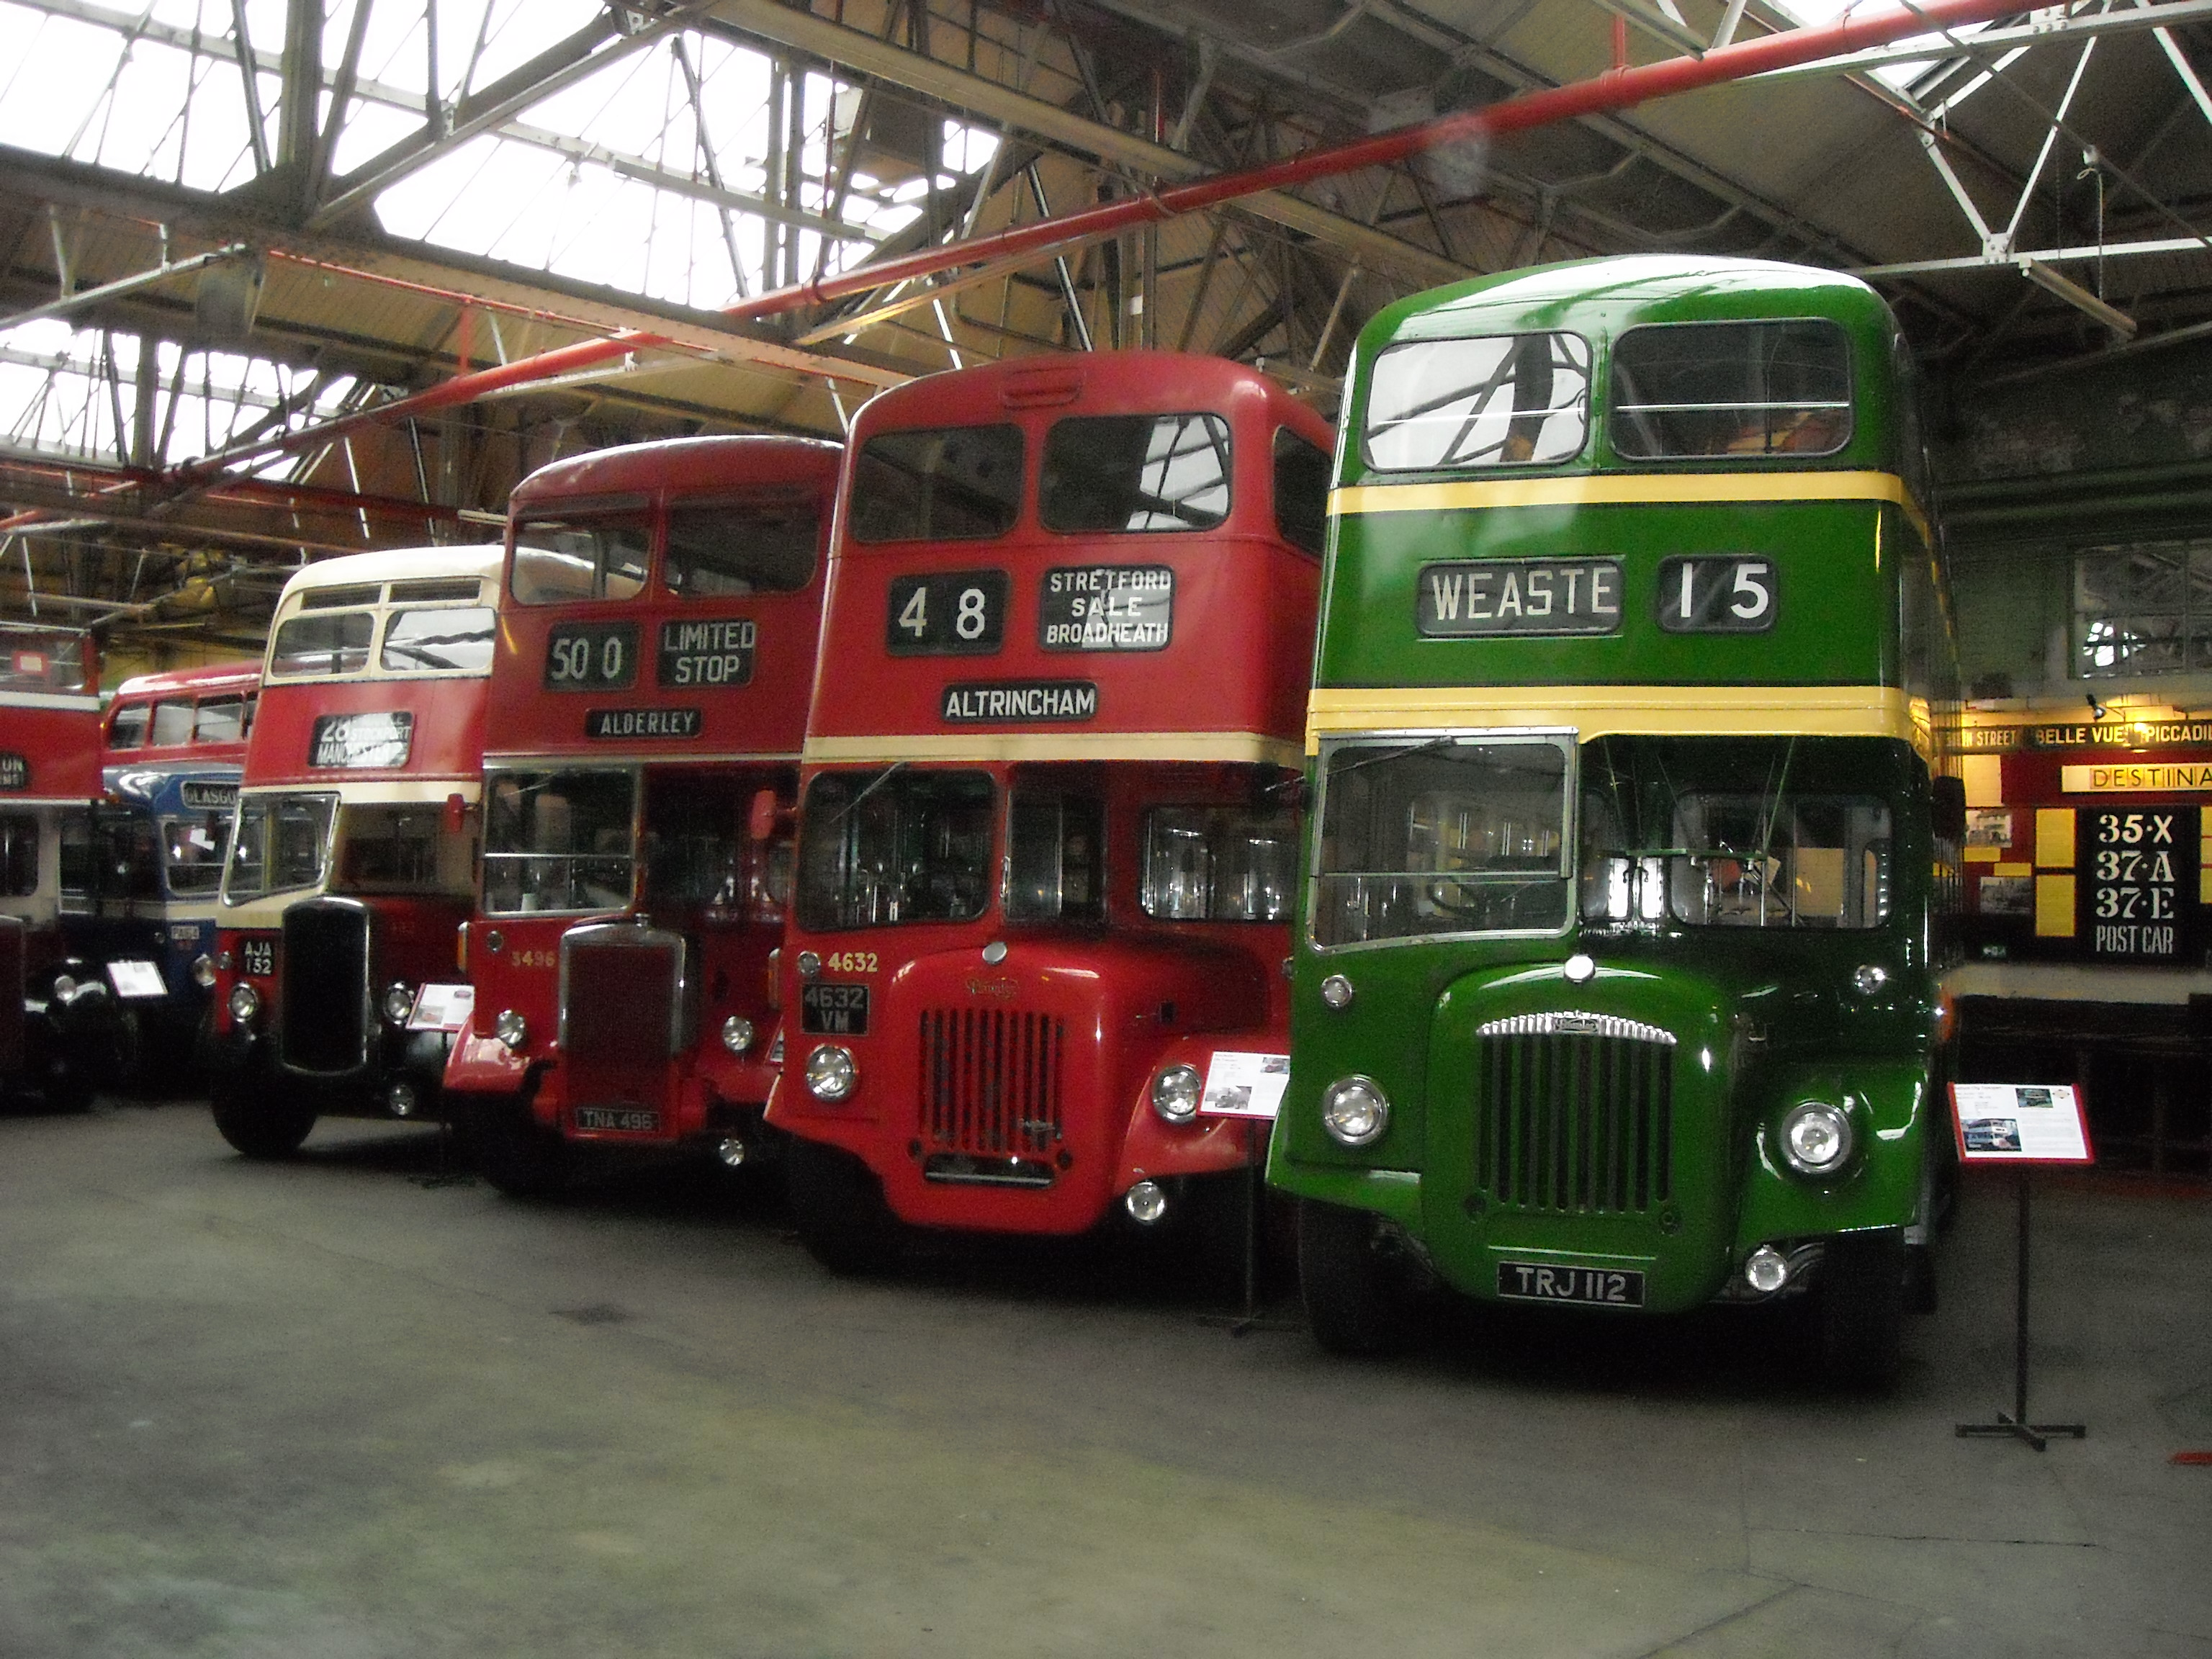 File:Museum of Transport in Manchester.jpg - Wikimedia Commons